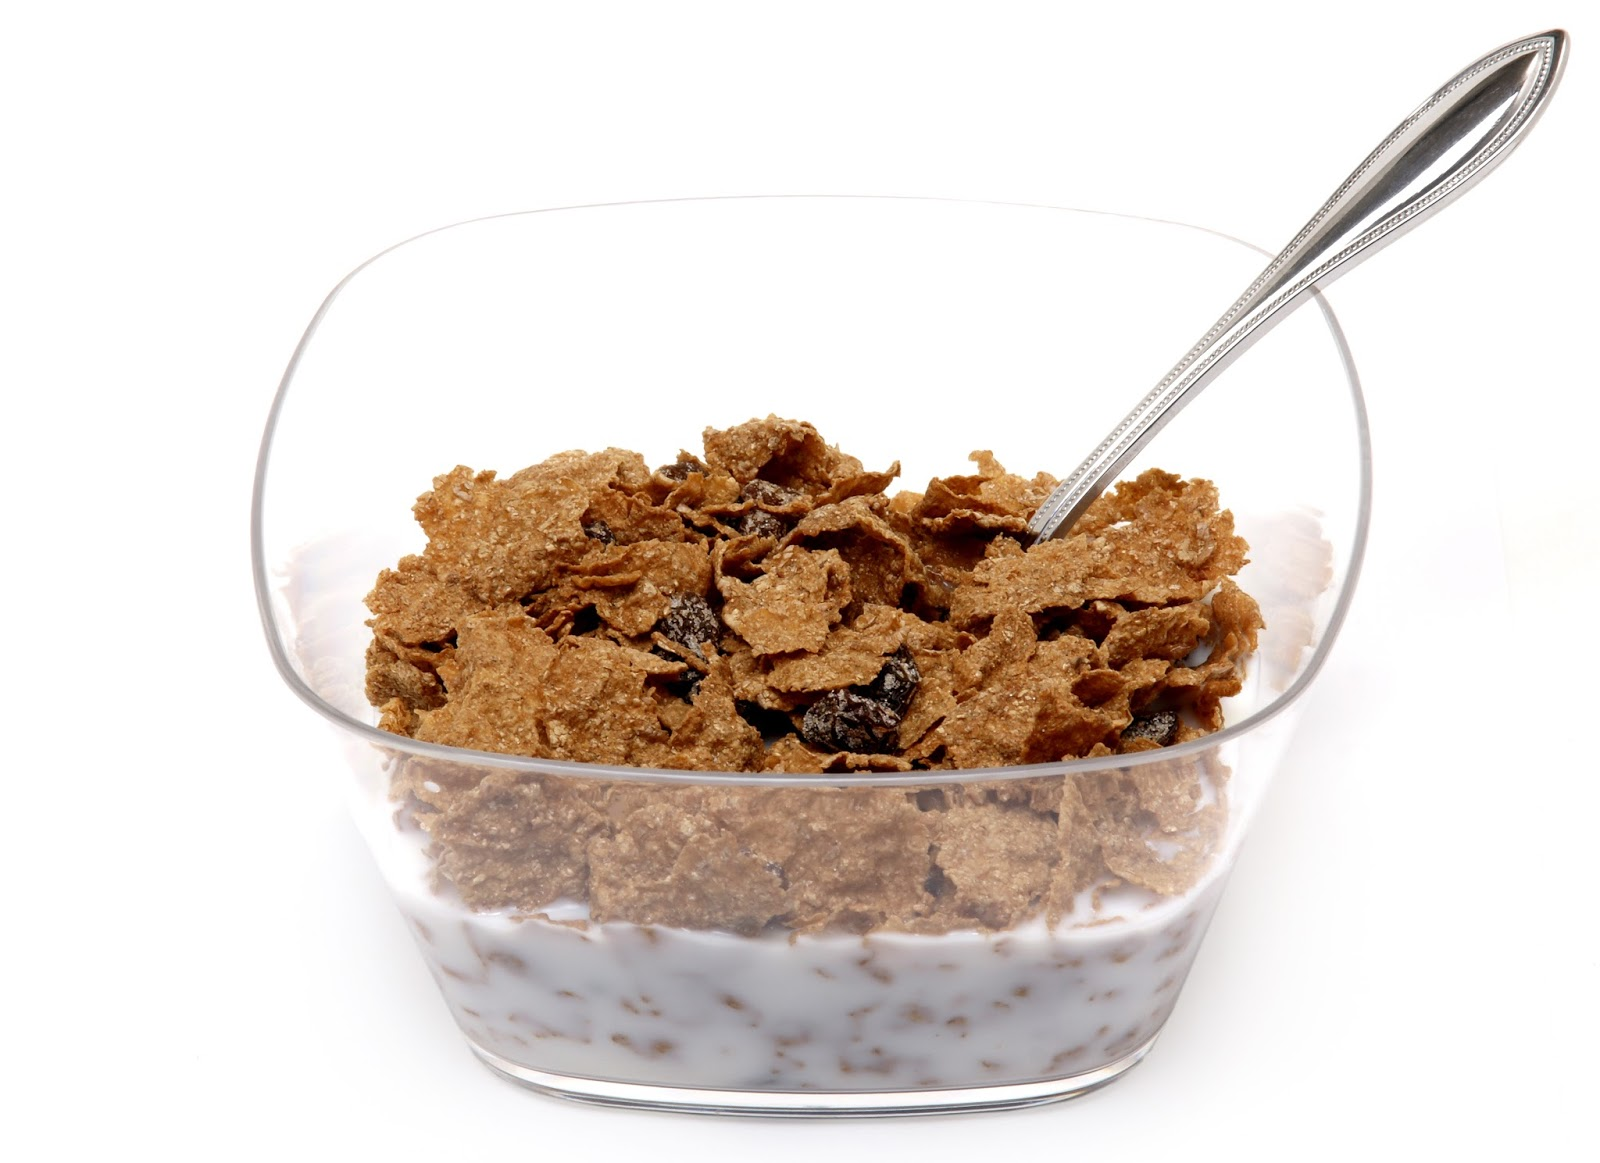 A bowl of bran cereal